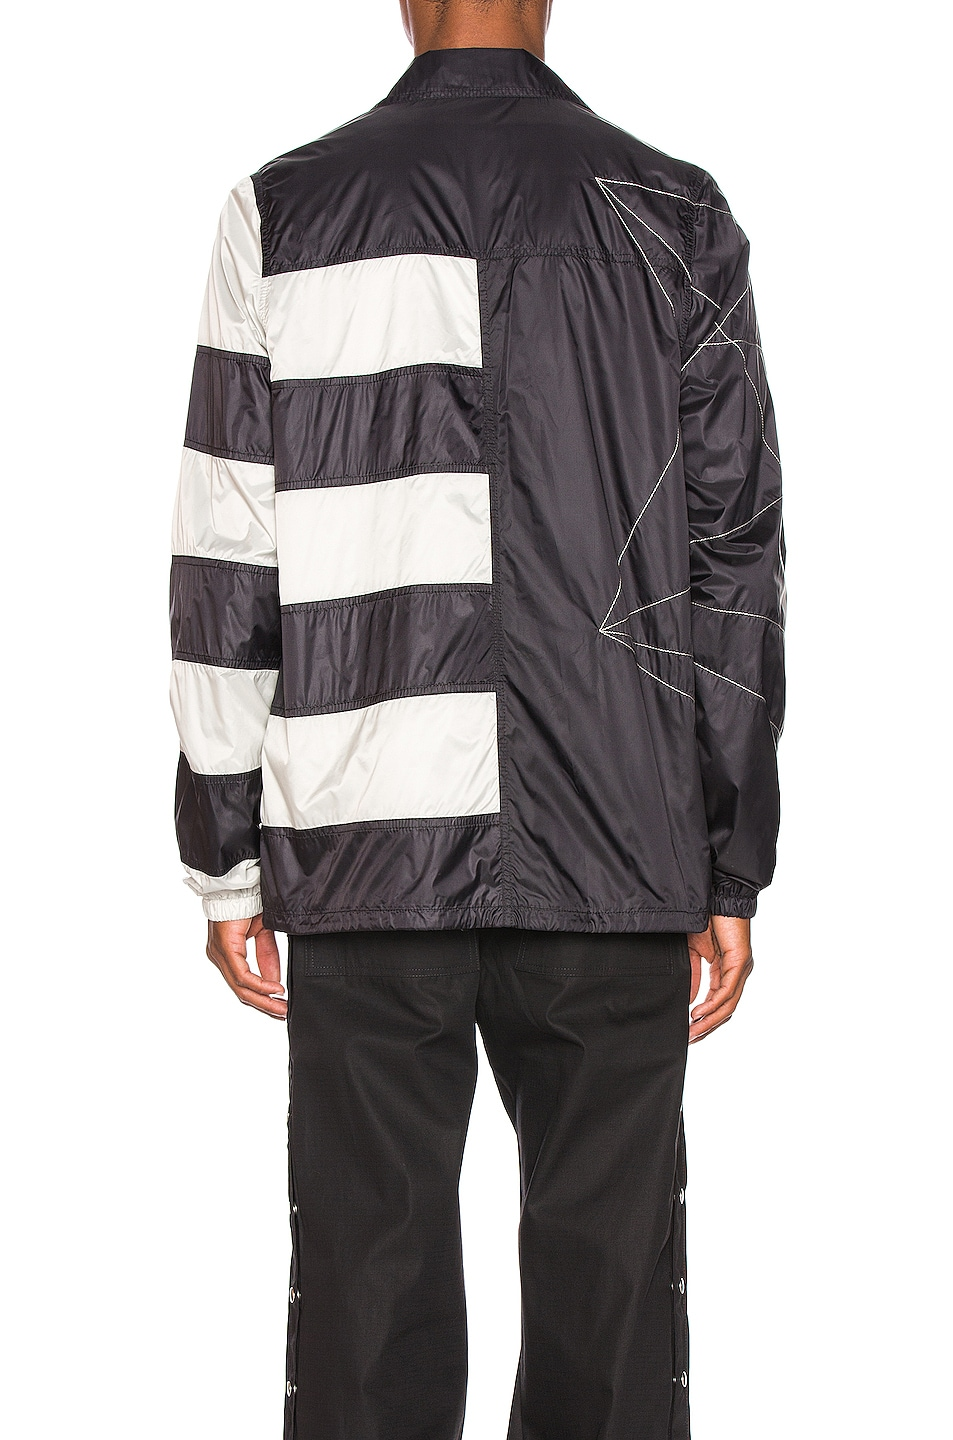 Image 5 of Rick Owens Snapfront Jacket in Black, Oyster & Pearl